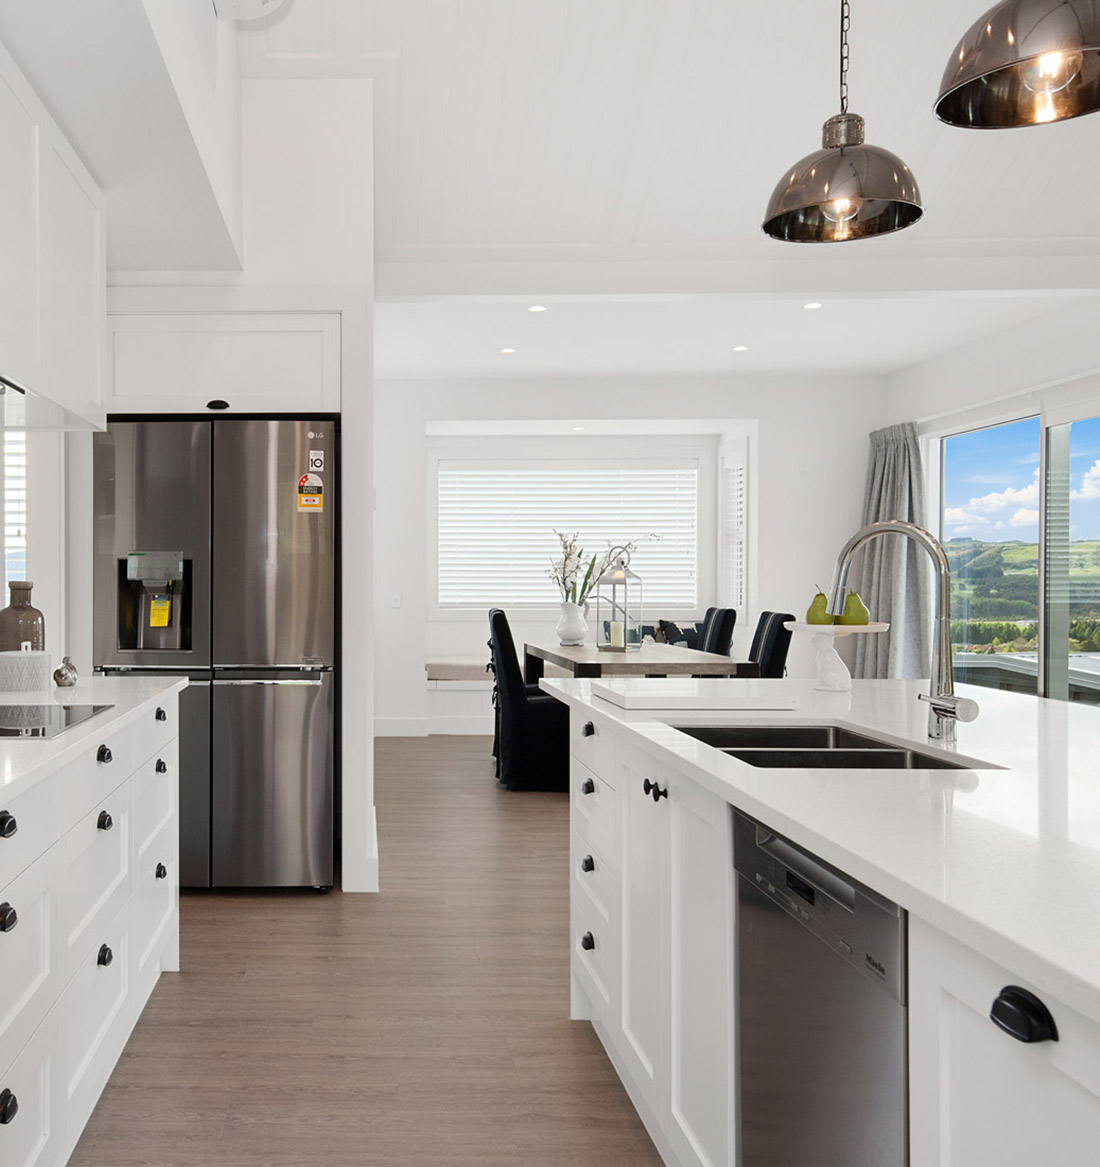 Taupo house builders harrier lane kitchen dining